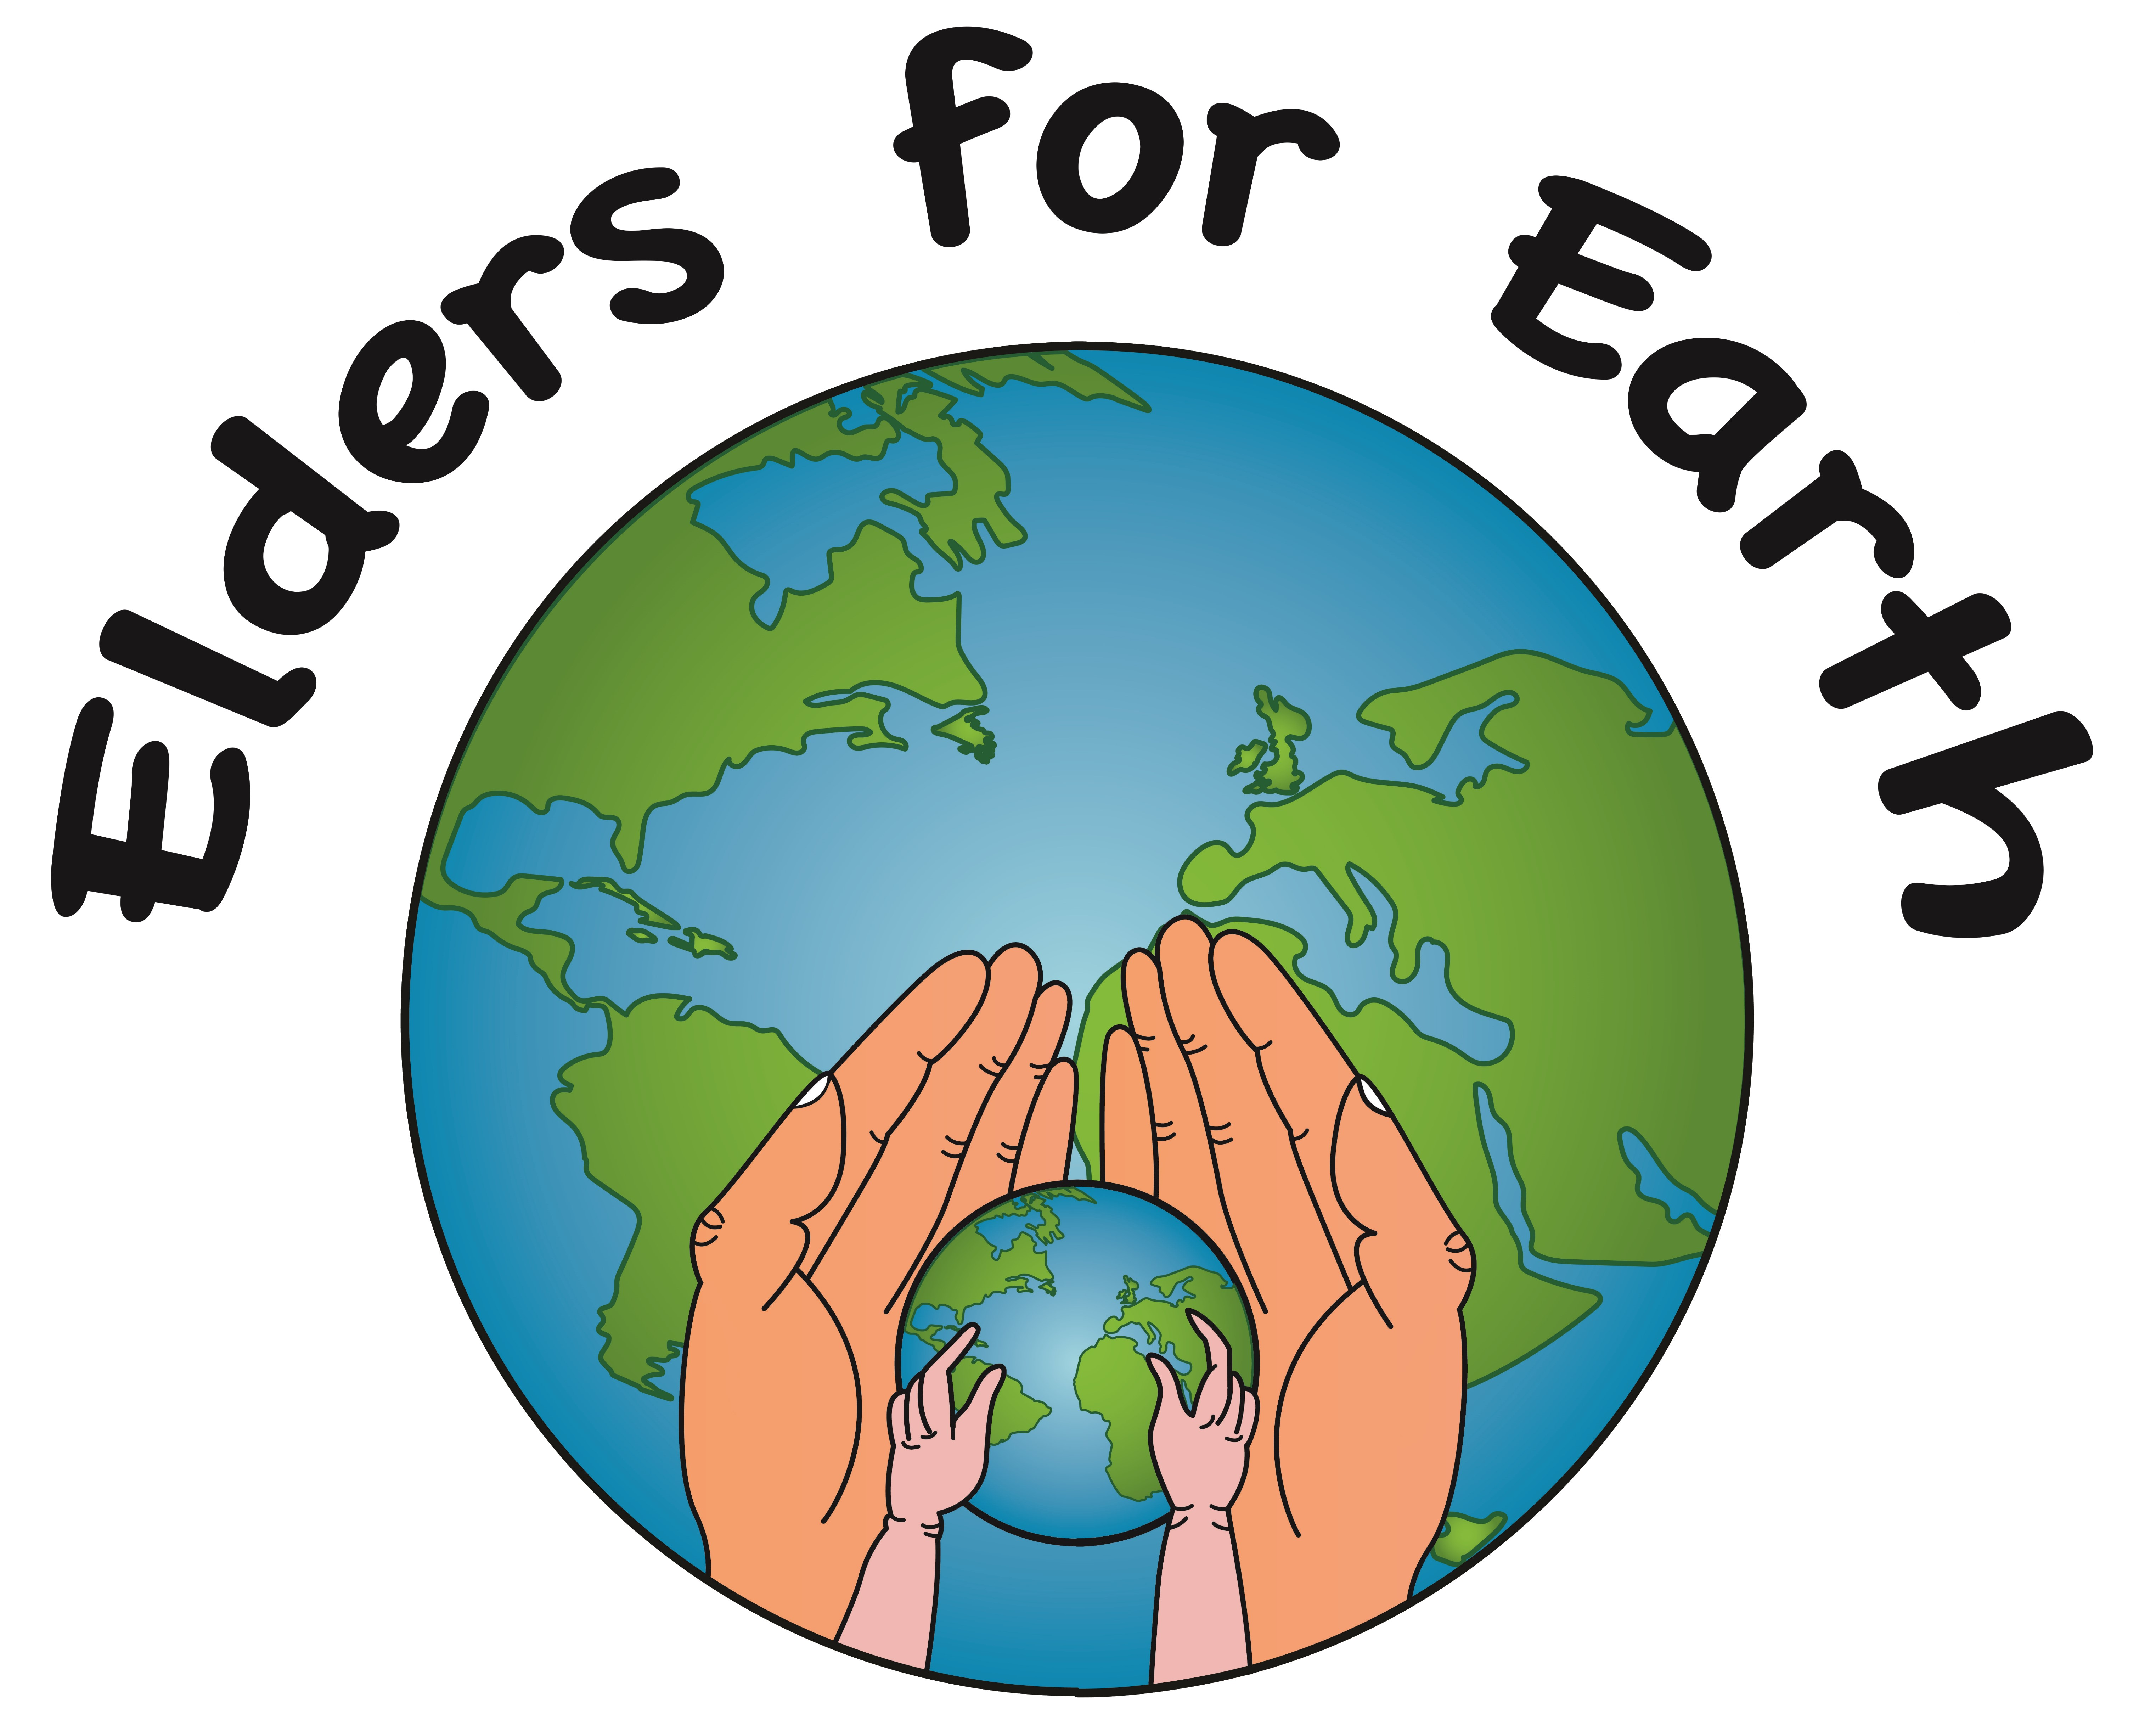 Elders for a livable earth